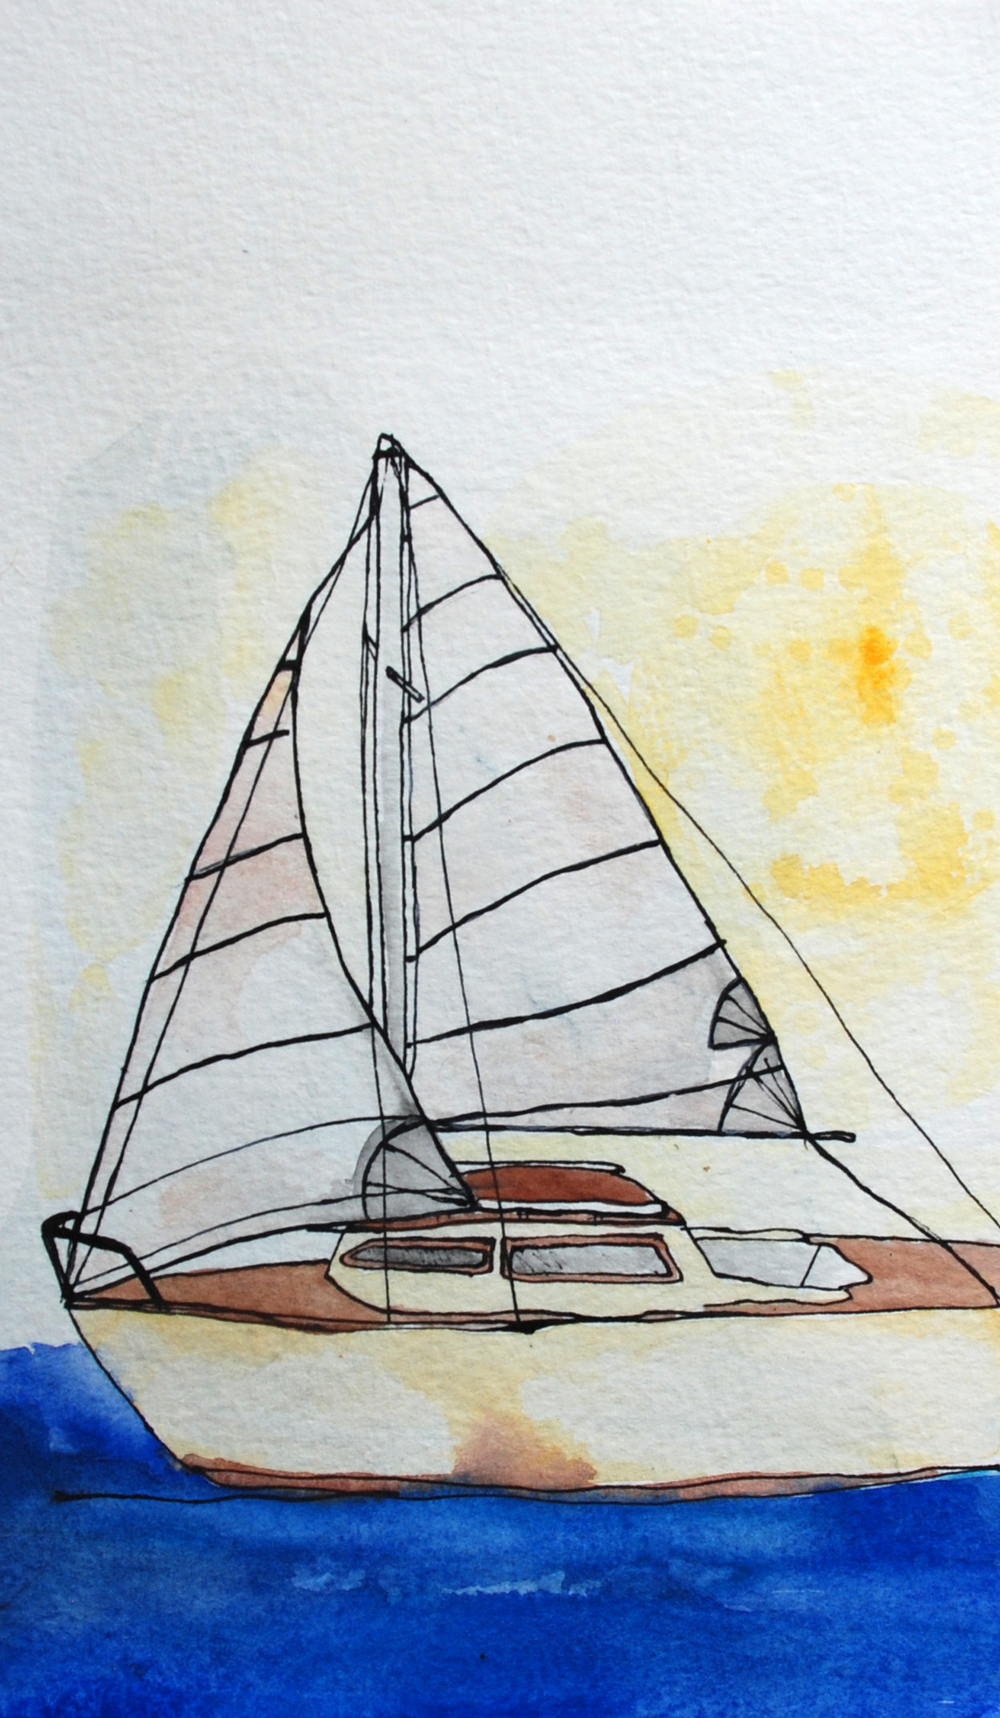 67: Catalina Sailboats 6 x 8 ""